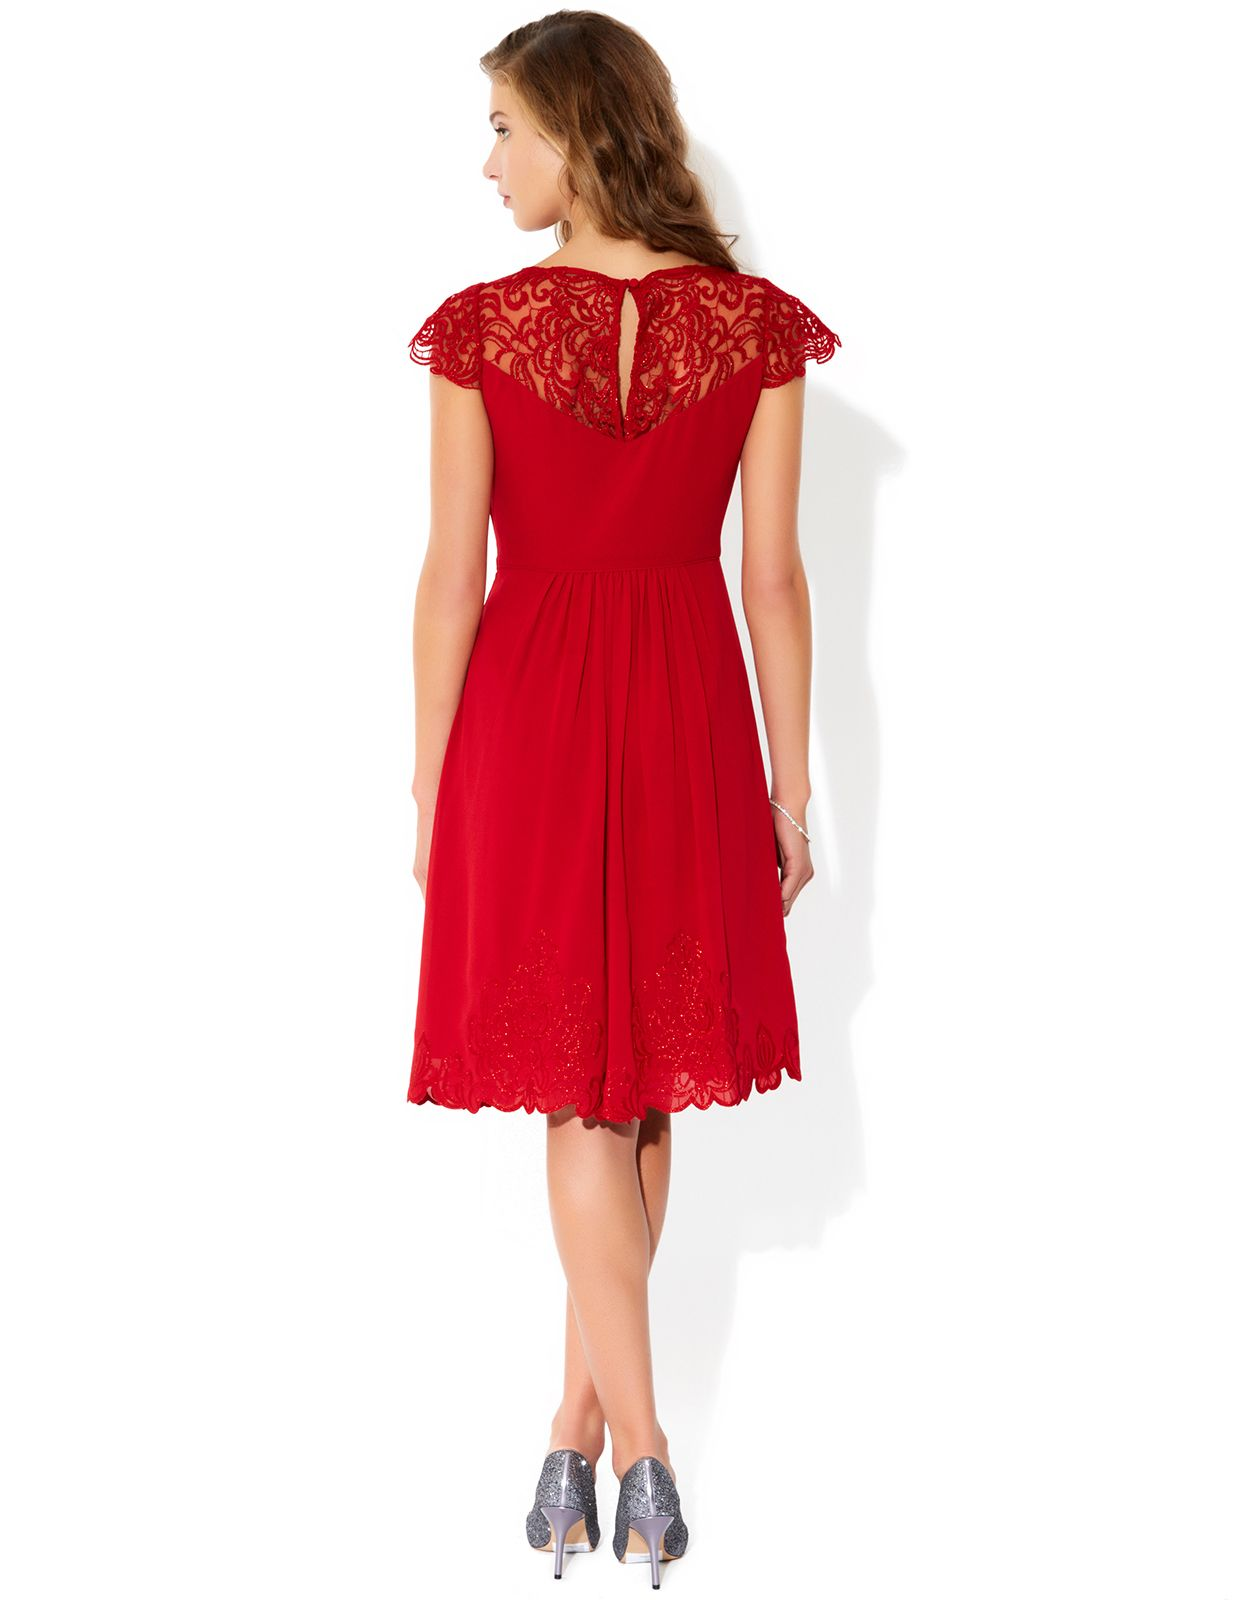 Vicky embroidered dress red monsoon sam dresses pinterest